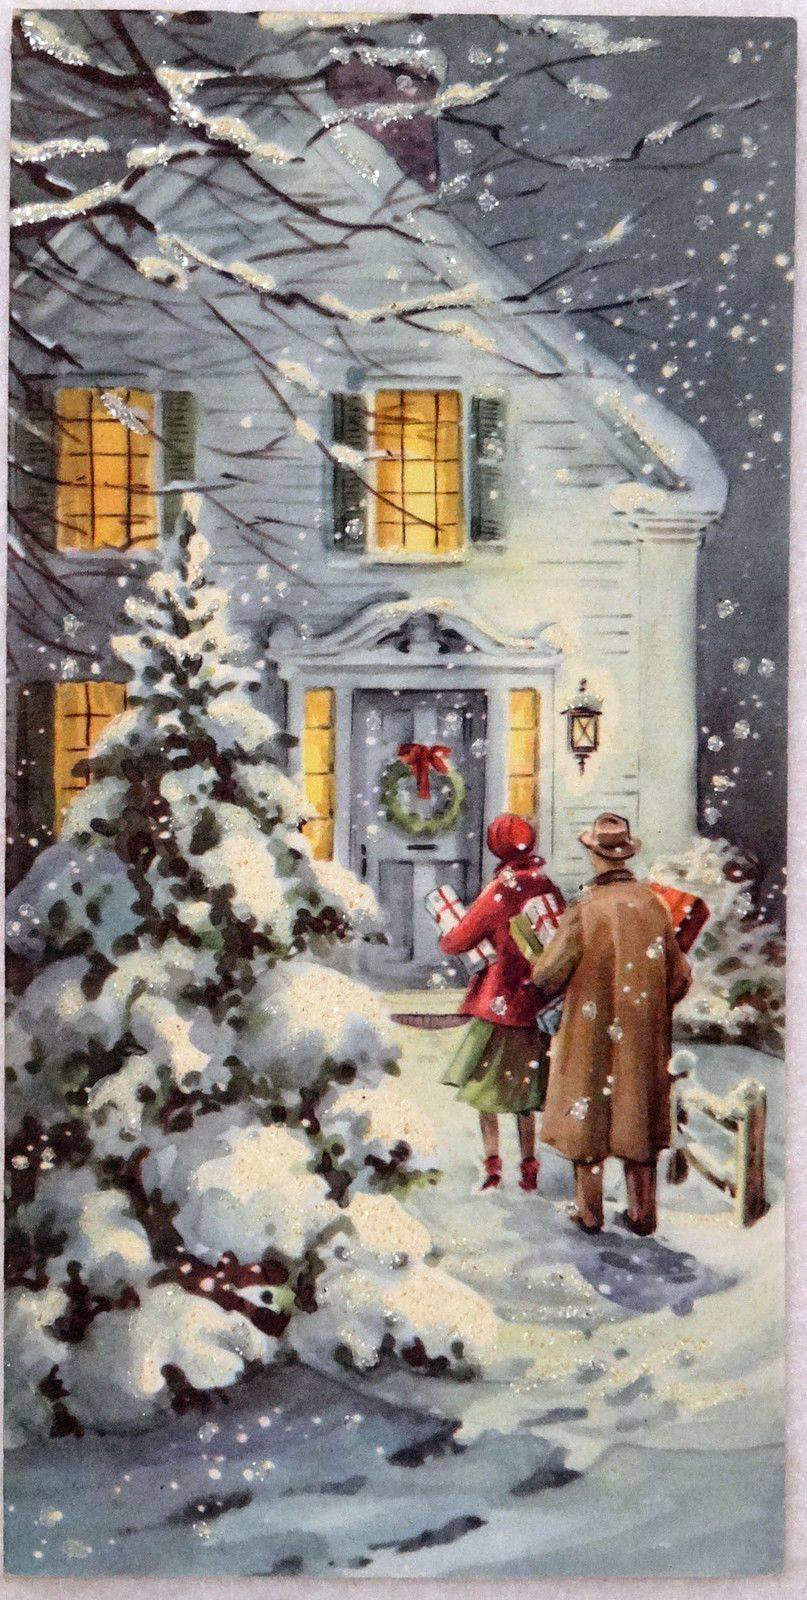 Pin by Lucy Maxfield on Vintage Christmas   Pinterest   Vintage ...